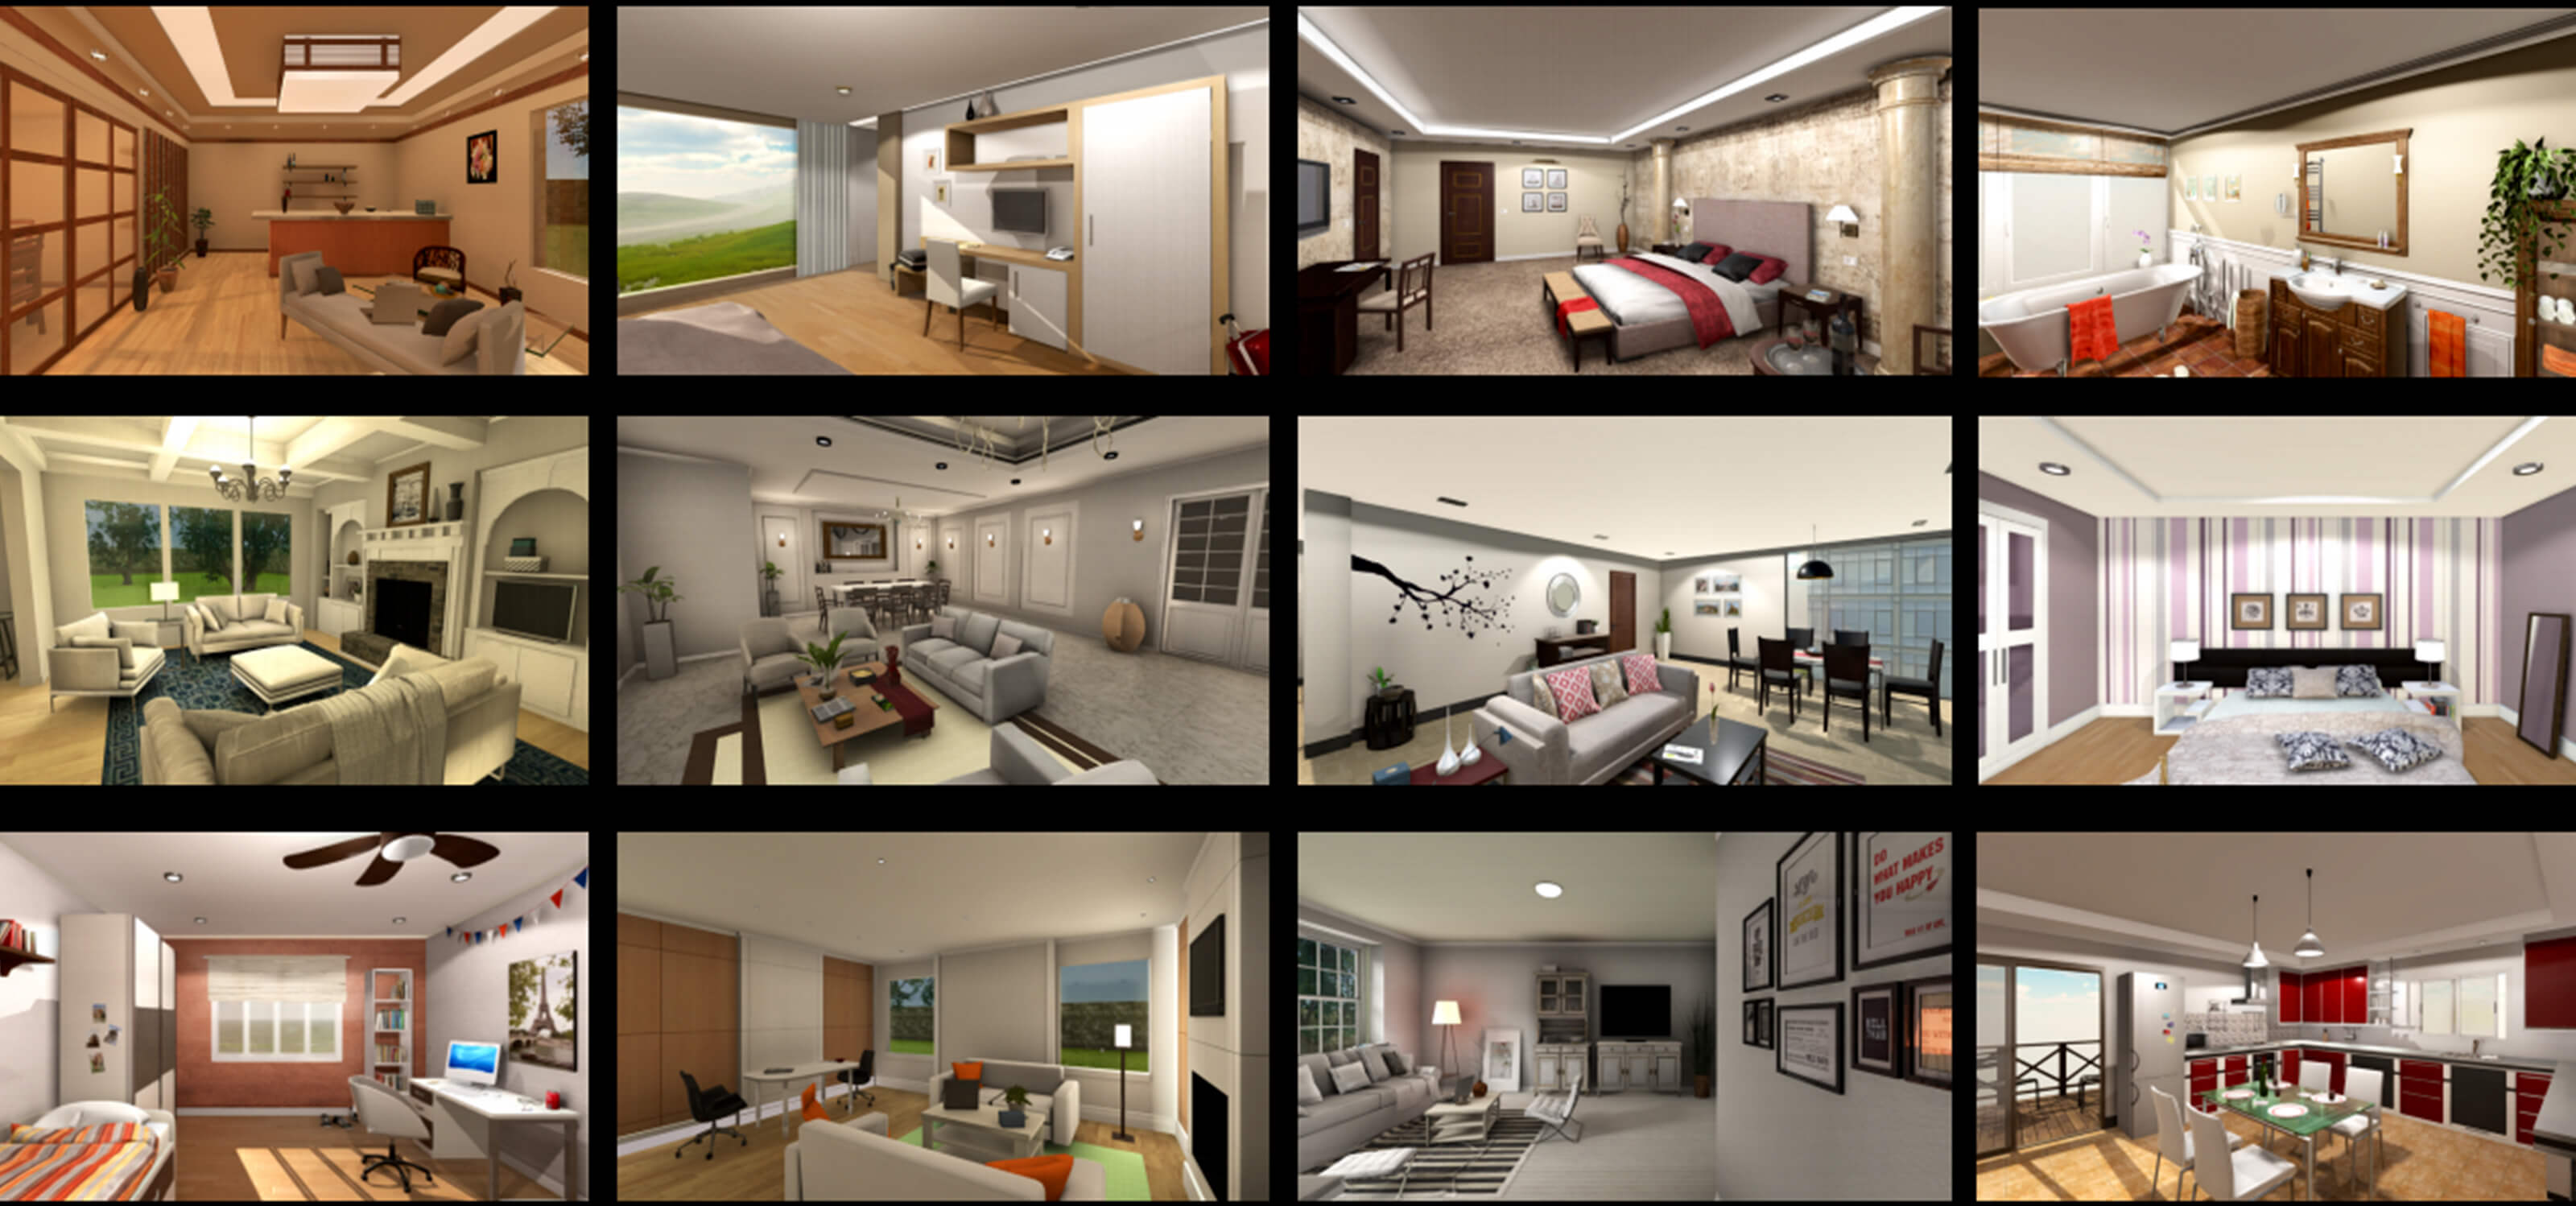 "A collage of room environments from the Allen Institute for AI's ""AI2-THOR"" project."